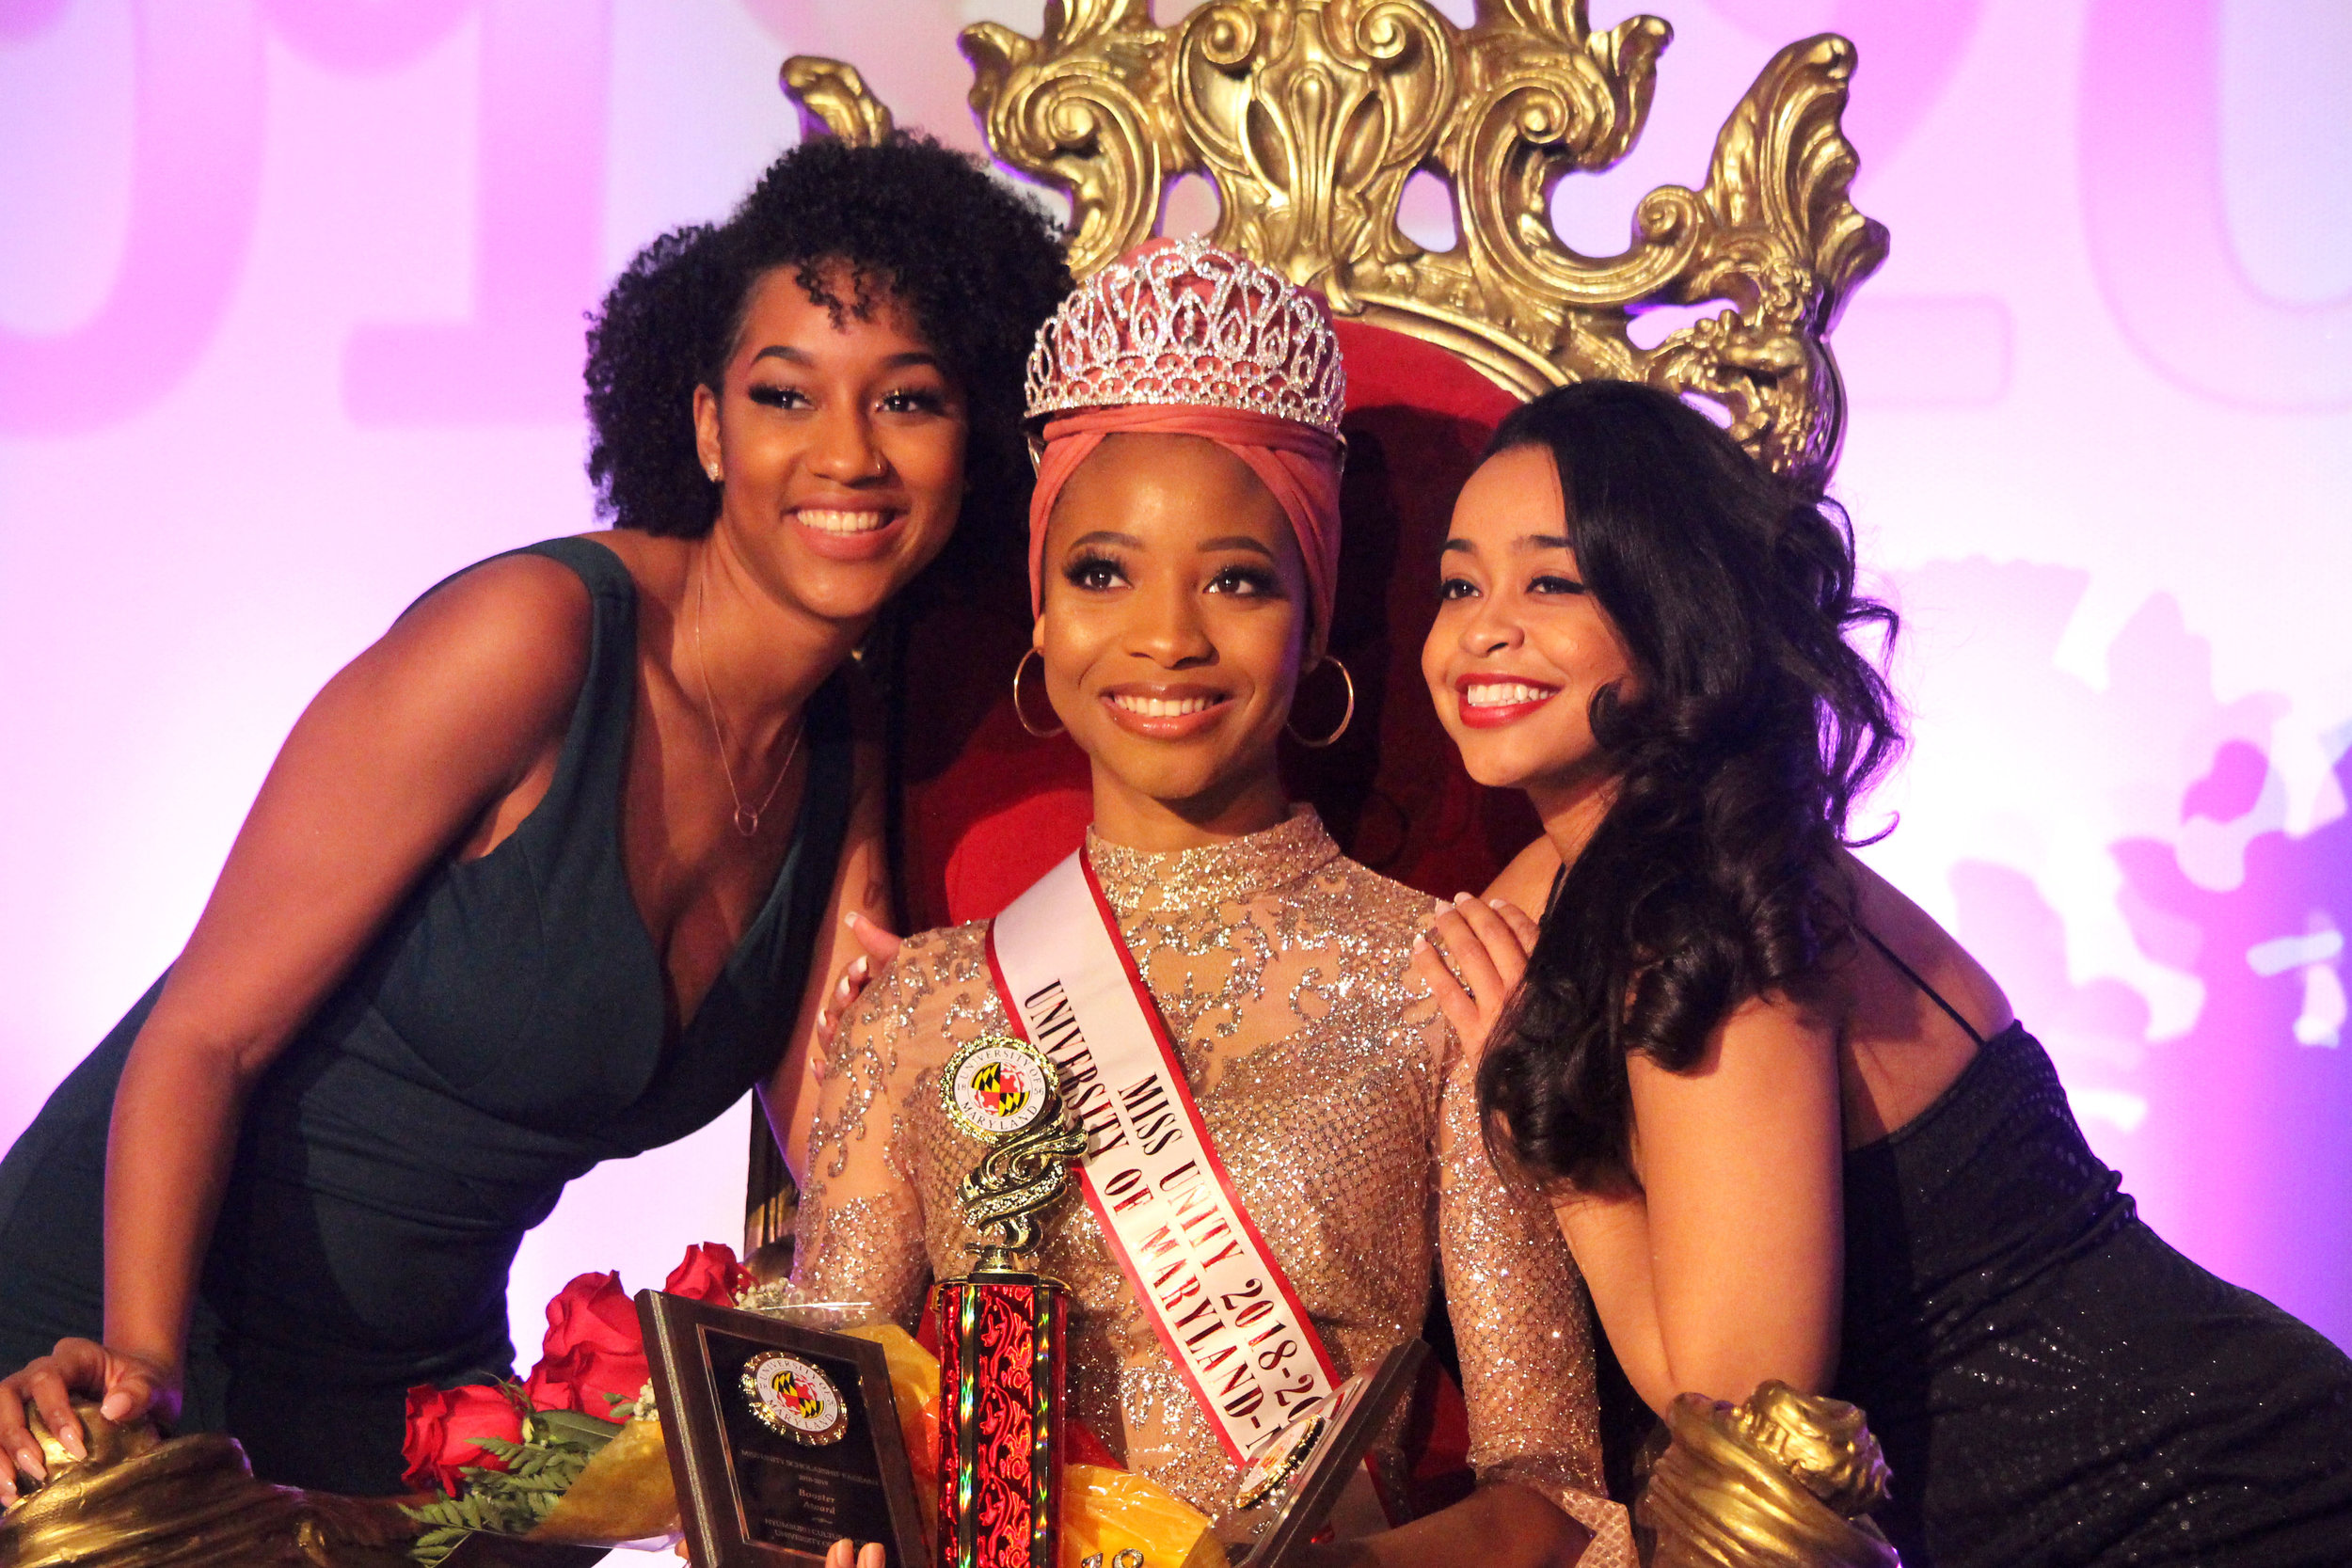 Jeyda Muhammad, the winner of this year's Miss Unity Scholarship Pageant, sits on the decorative throne between Rae-Ann Steele (left) and Cathryn Paul (right) for a series of posed portraits at the Hoff Theater in College Park, Md. on Sunday, Nov. 11, 2018. (Alexandra Glover/The Black Explosion)